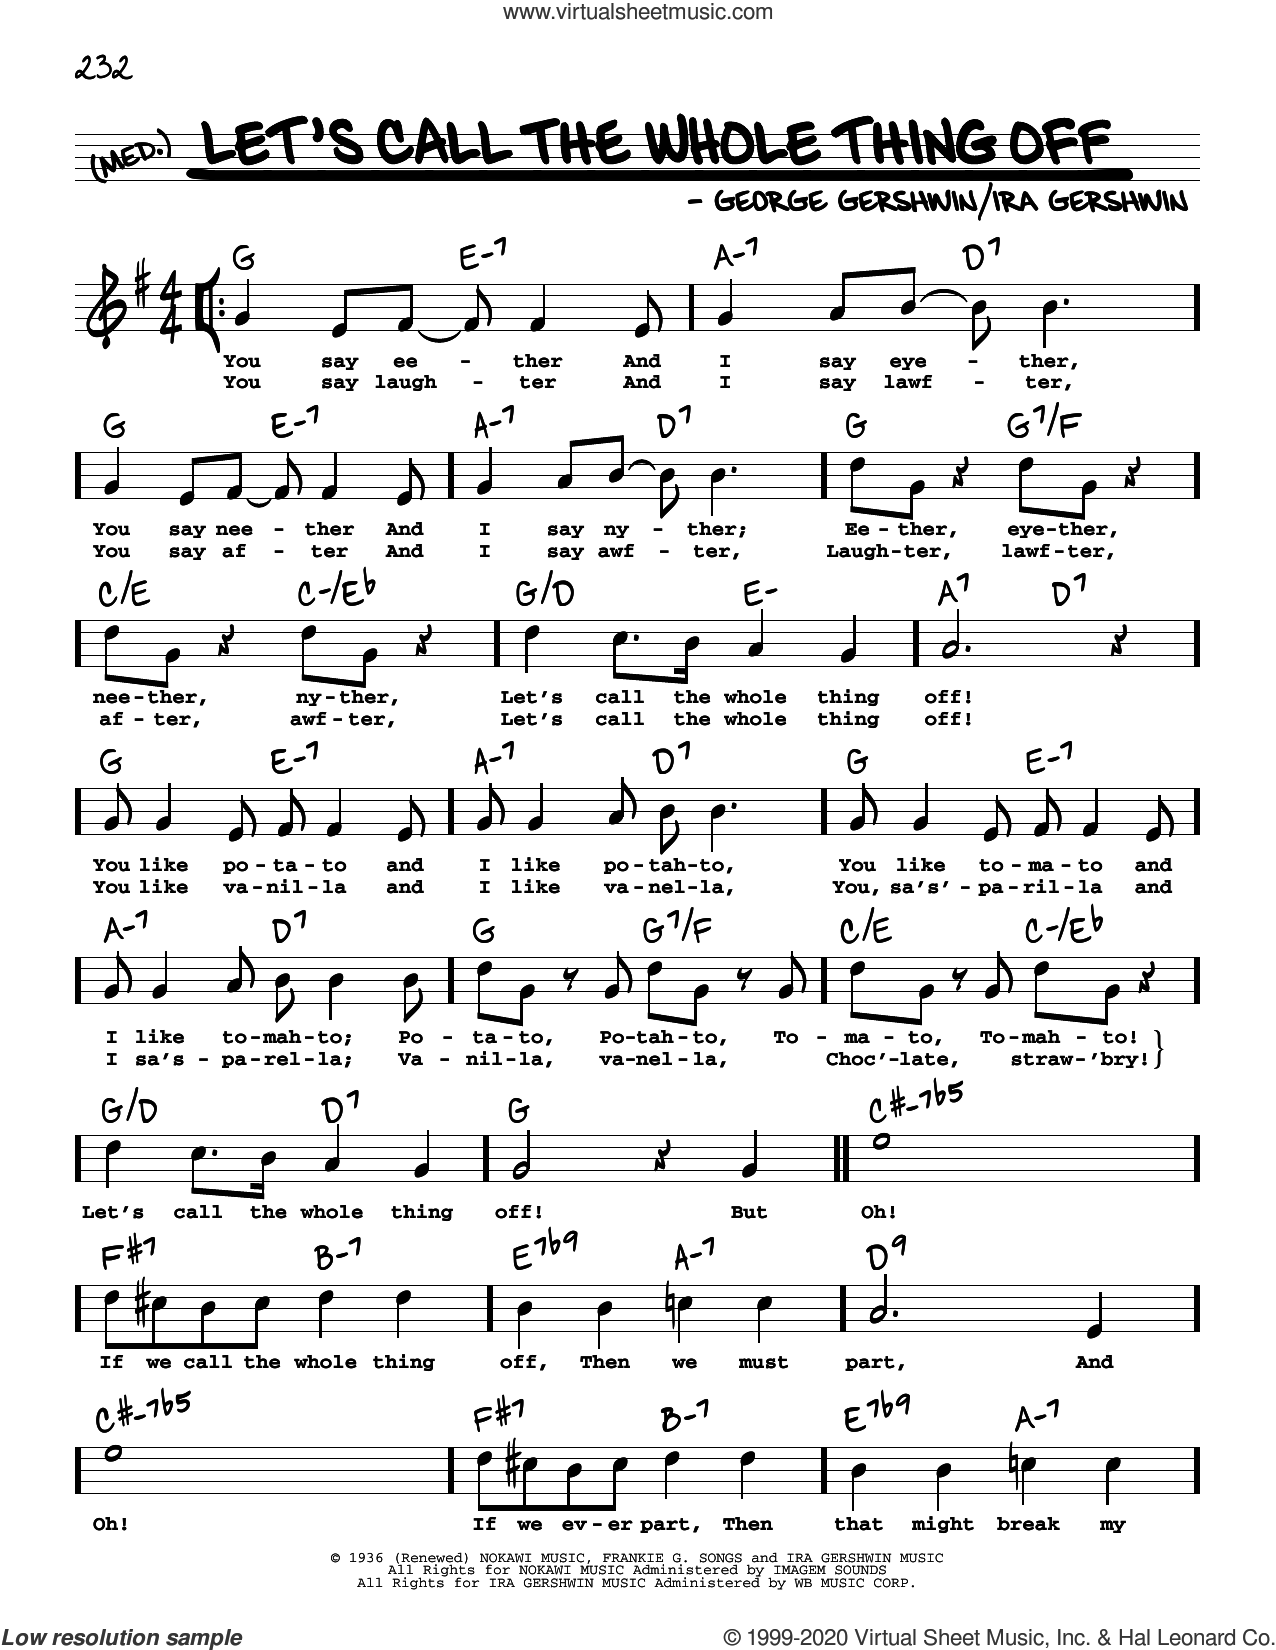 Let's Call The Whole Thing Off (High Voice) (from Shall We Dance) sheet music for voice and other instruments (high voice) by George Gershwin, George Gershwin & Ira Gershwin and Ira Gershwin, intermediate skill level